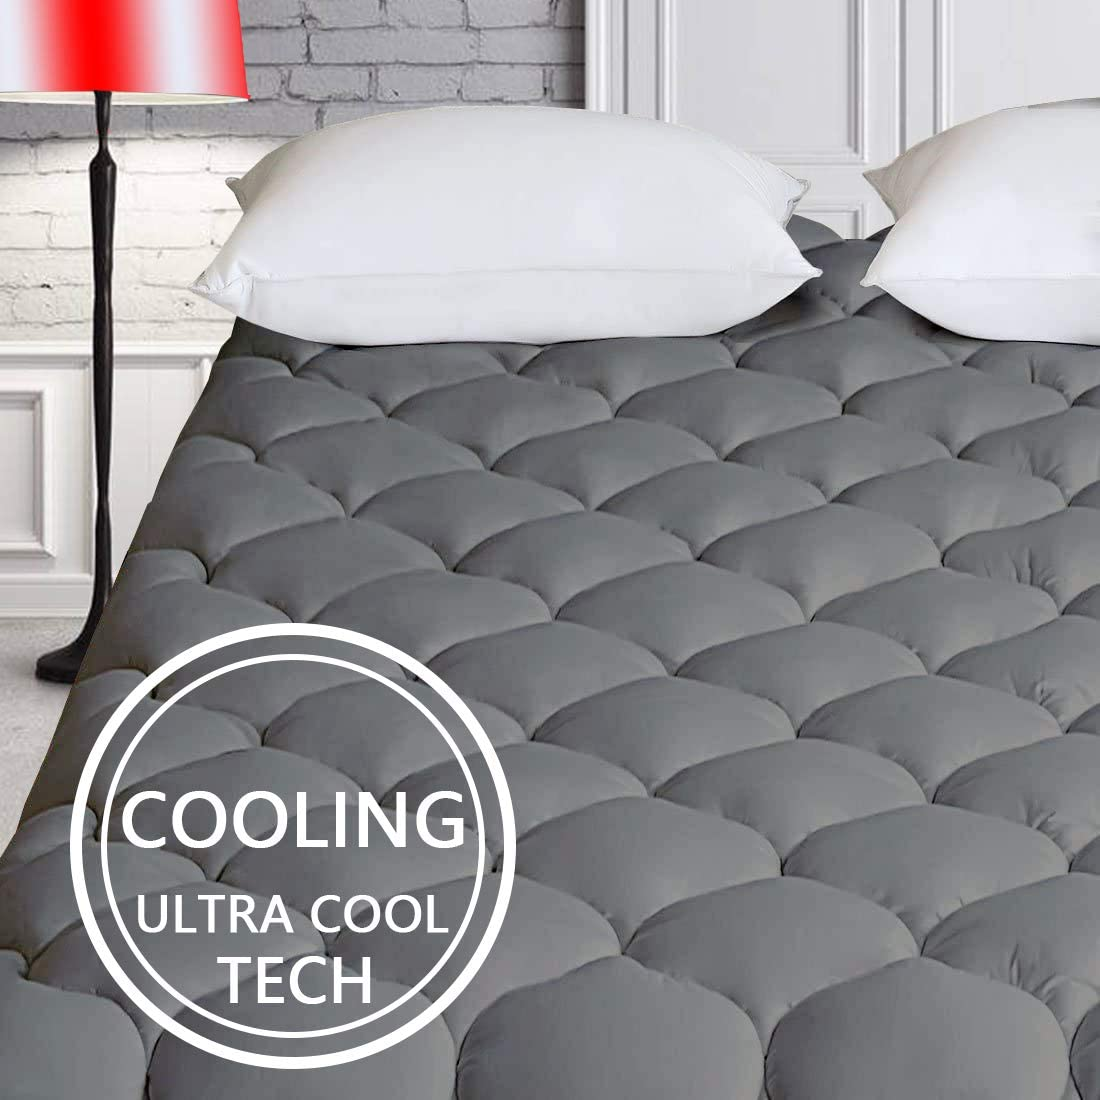 "HARNY Cooling Mattress Pad Cover Pillow Top Dark Gray Queen Size Ultra Cool TECH Fabric Breathable Mattress Topper Quilted Fitted with 8-21"" Deep Pocket"